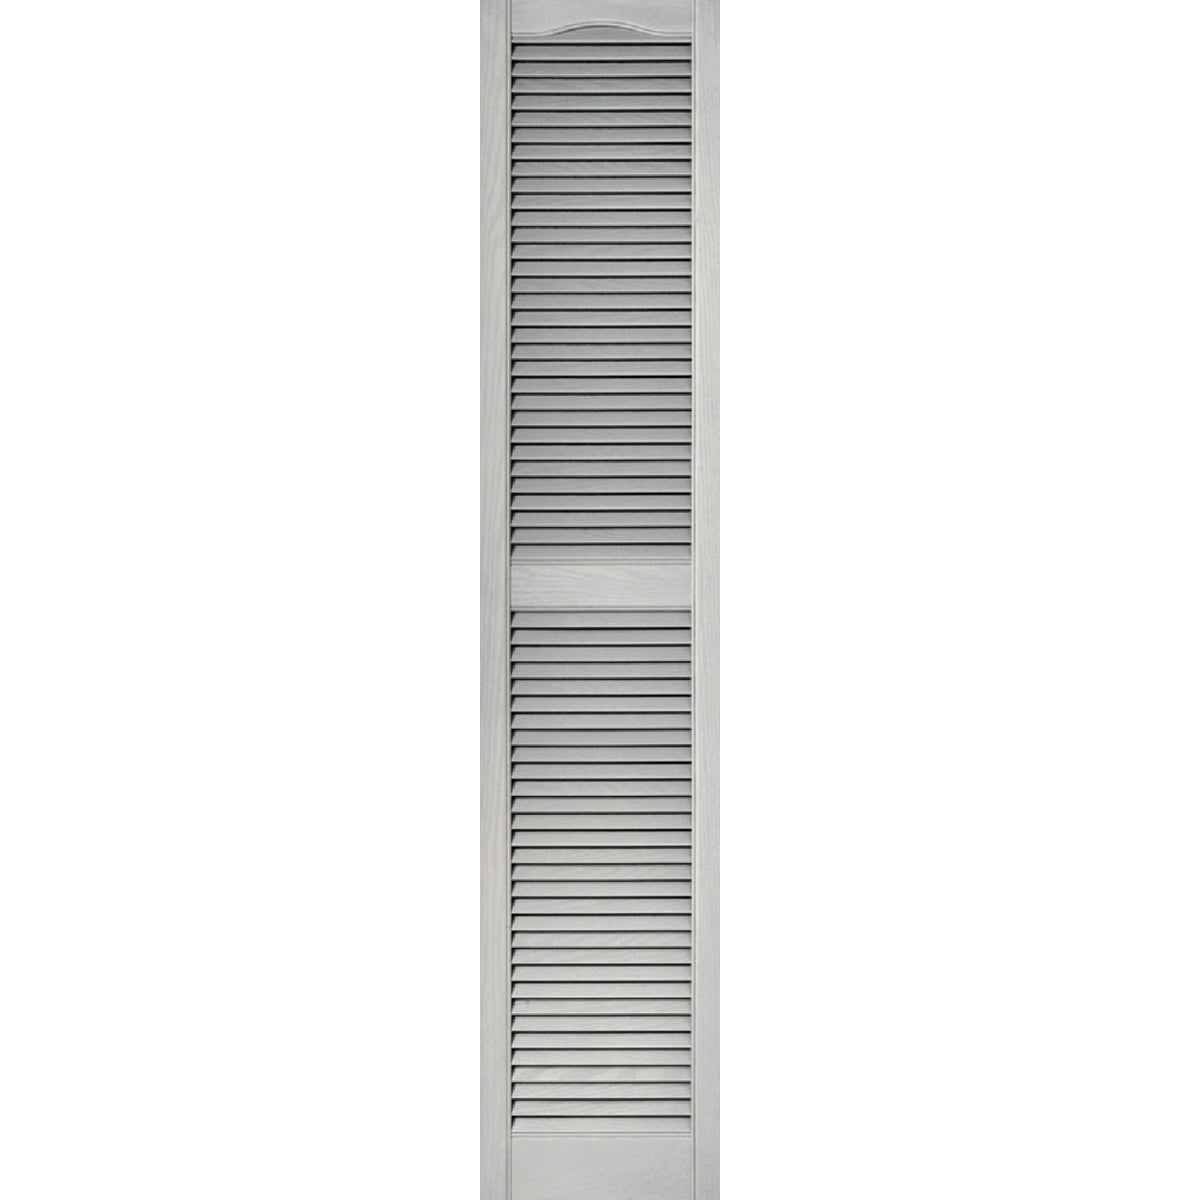 15X72 PBL LOUVER SHUTTER - 020140072030 by The Tapco Group